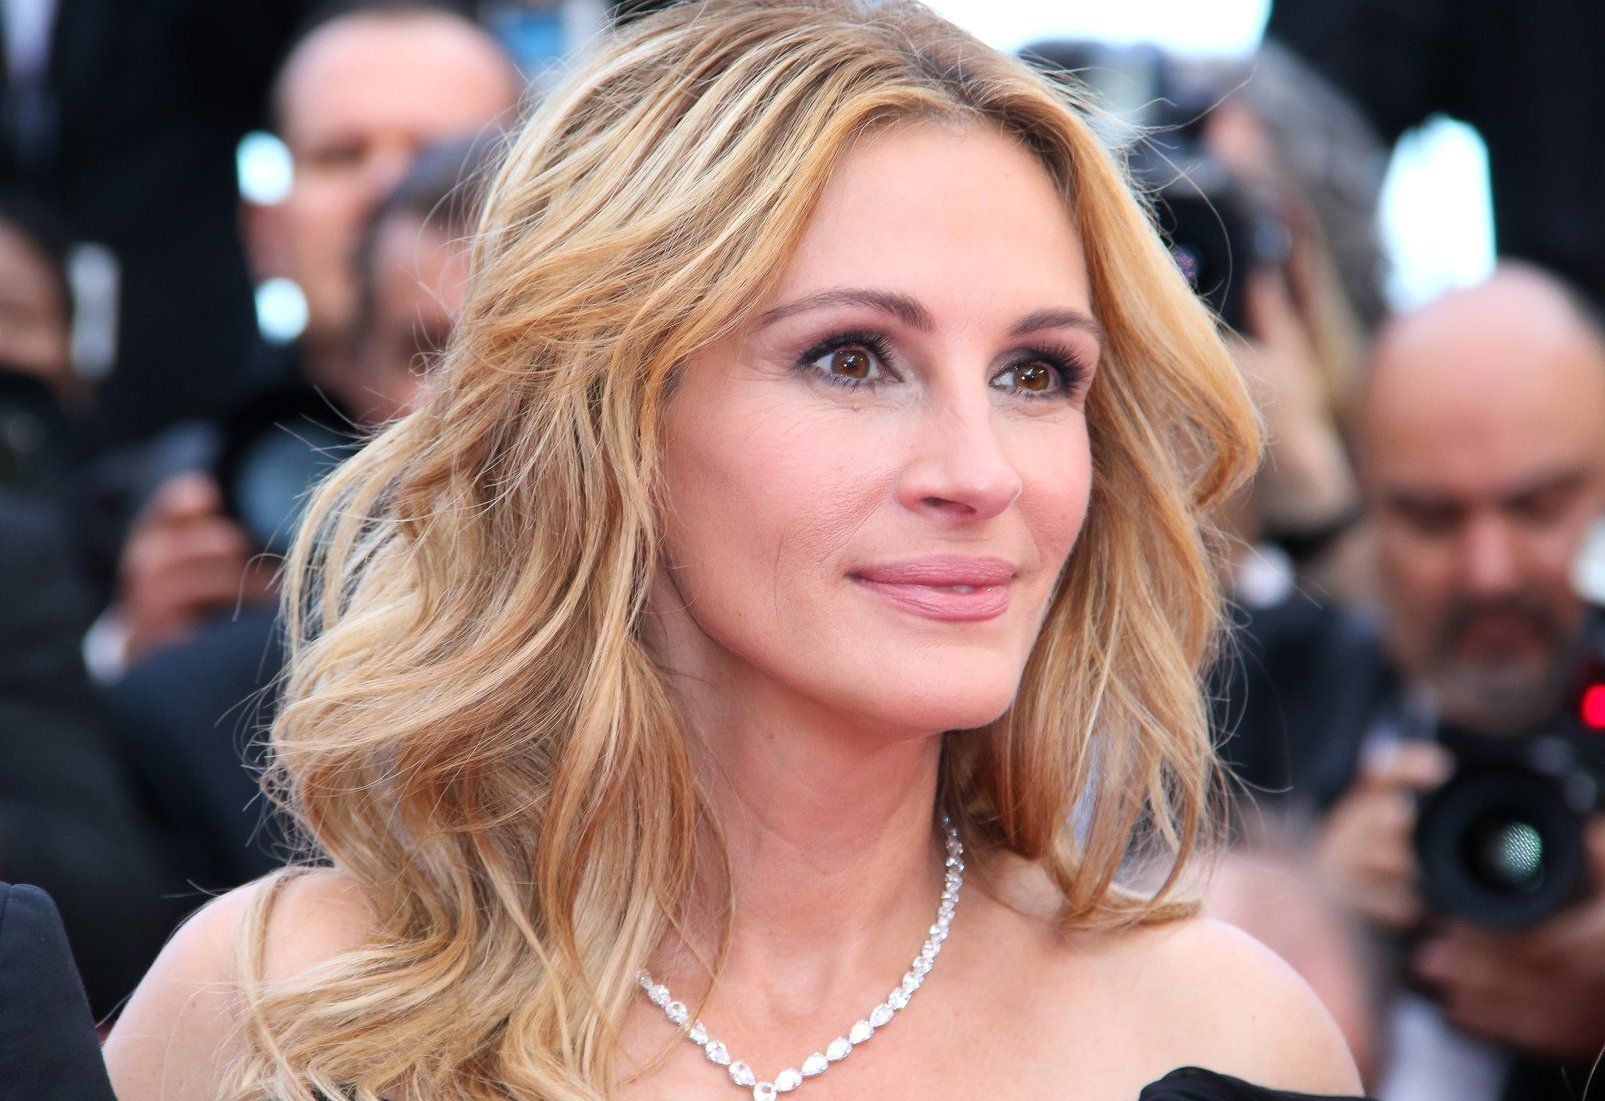 julia roberts - CANNES 2016 - MONTEE DES MARCHES DU FILM 'MONEY MONSTER', Image: 284281184, License: Rights-managed, Restrictions: NO RESTRICTION, Model Release: no, Credit line: Profimedia, Visual